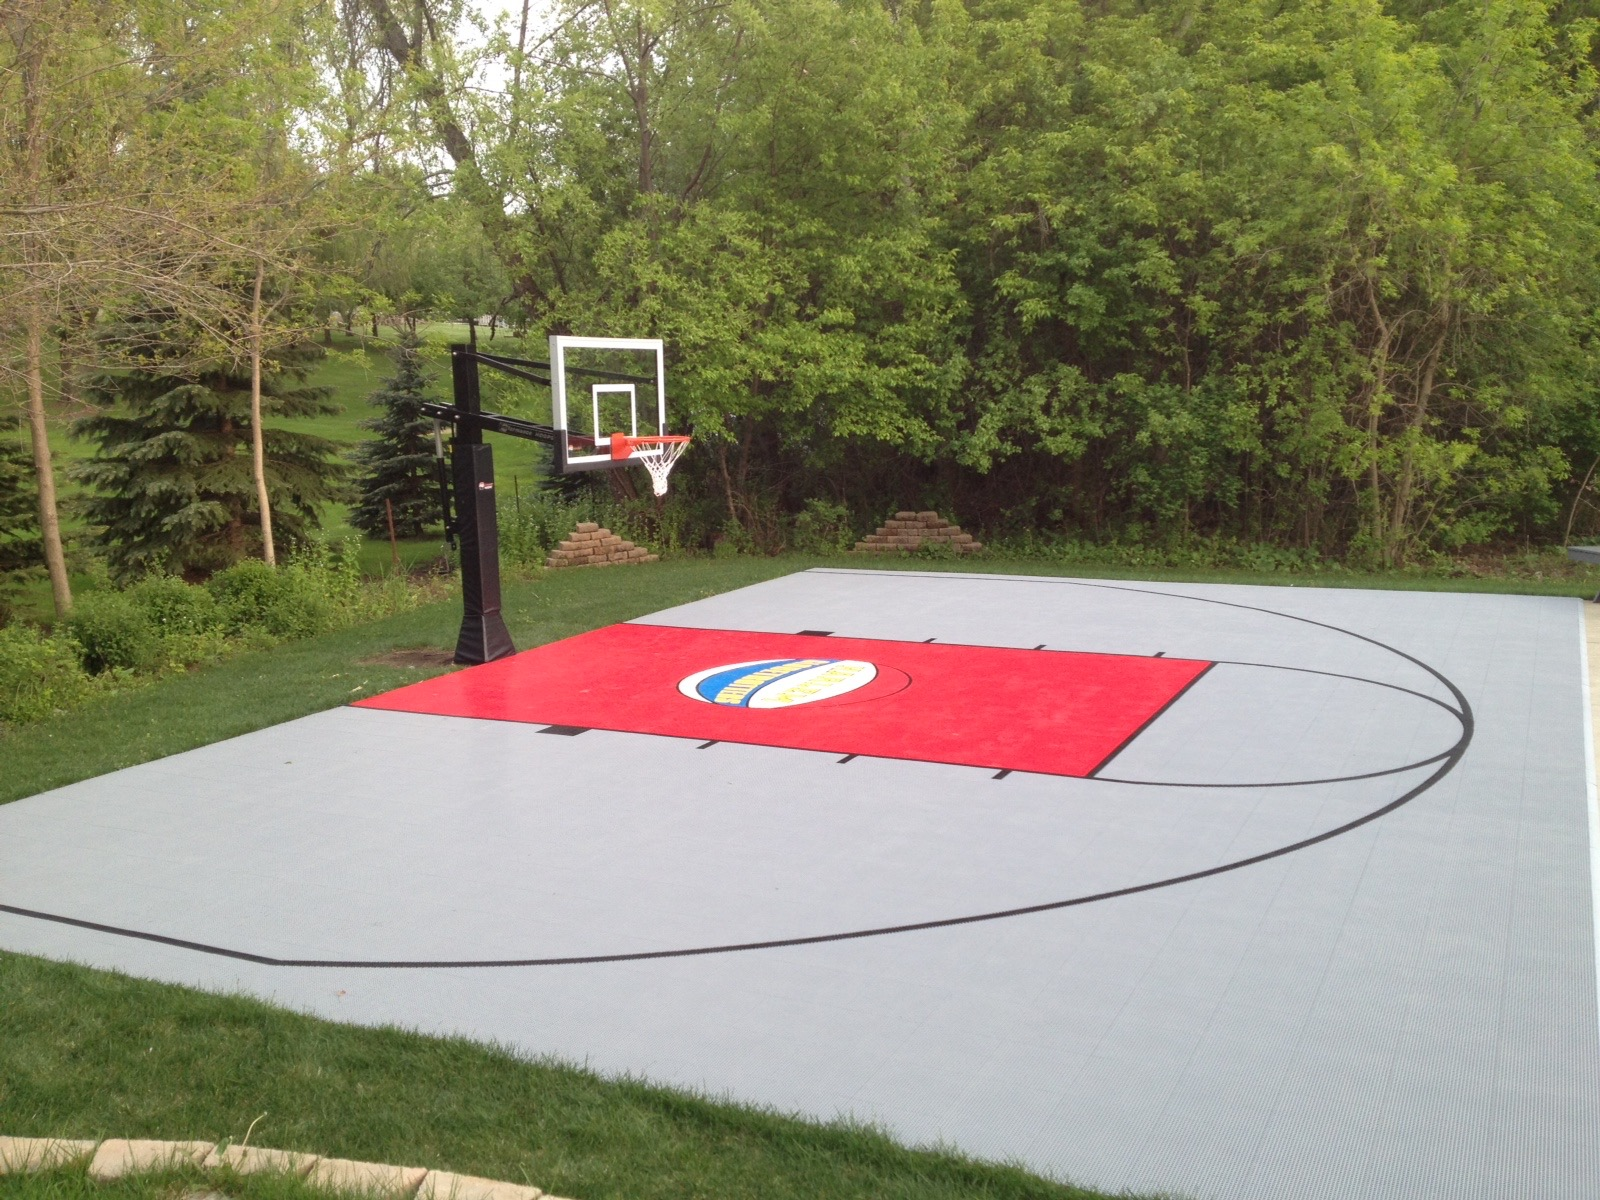 Outdoor Basketball Courts | Game Courts | Millz House | SnapSports MN